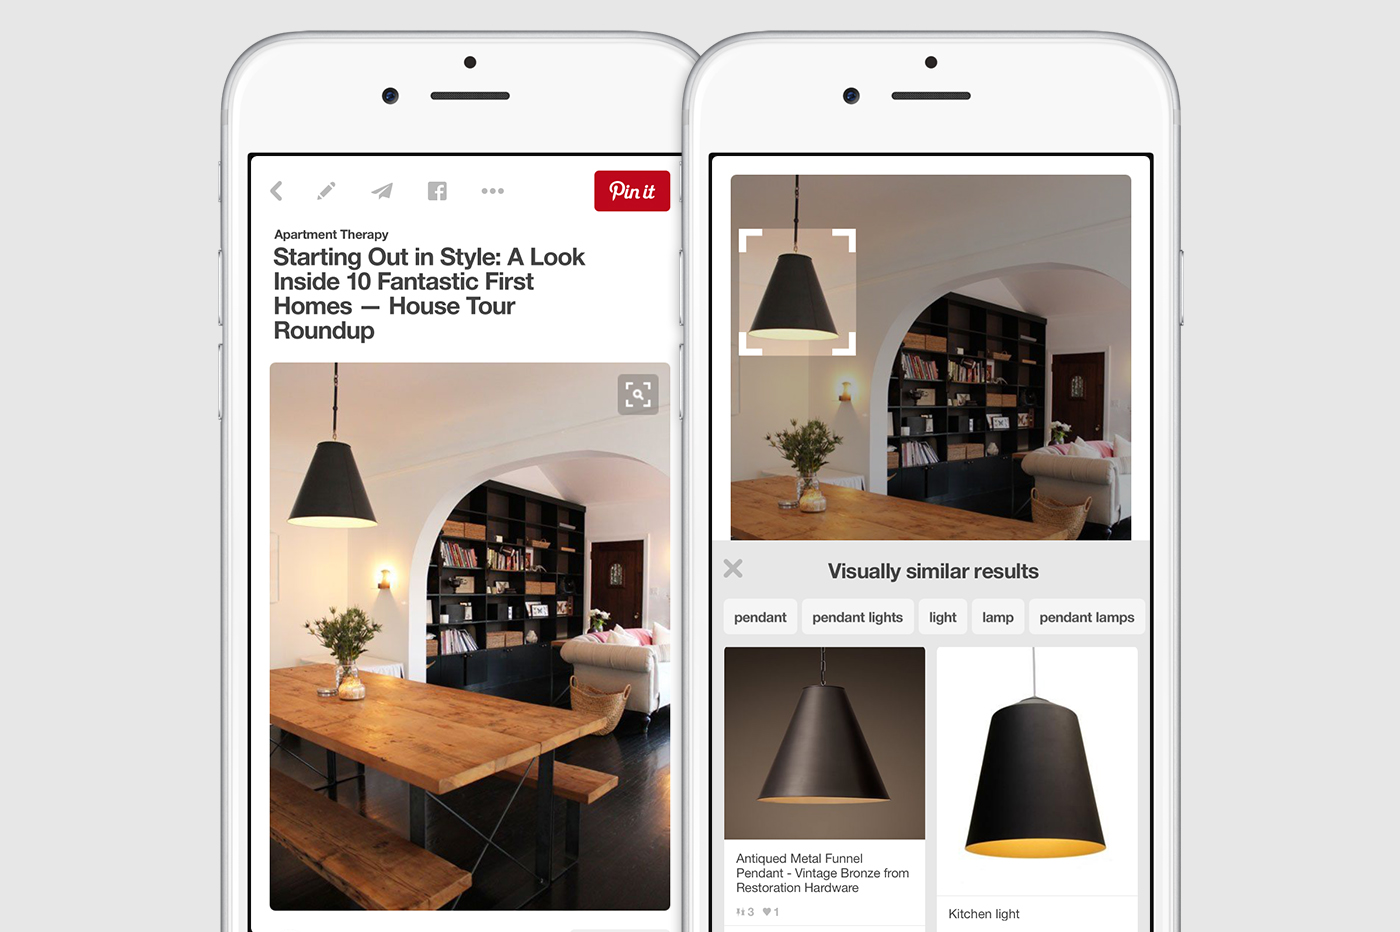 Pinterest: Pinterest For Business: What You Need To Know For 2017